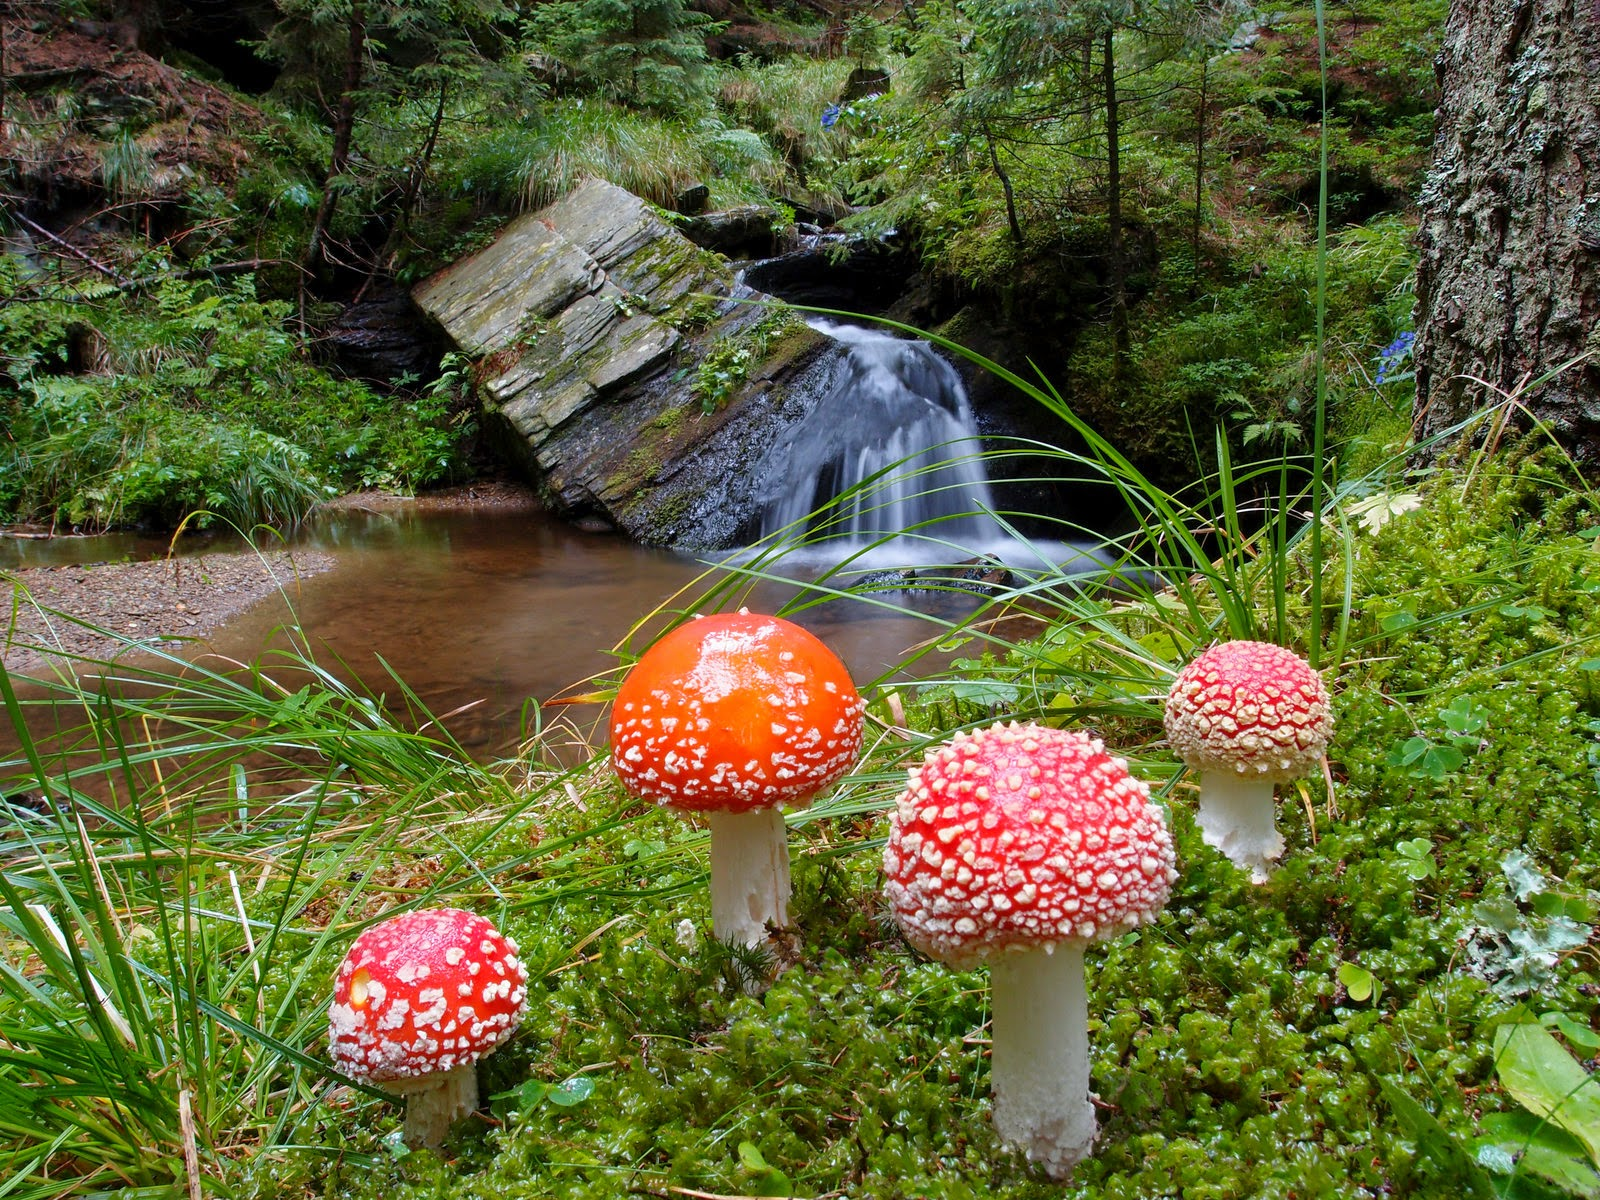 Sculpture Hd Wallpapers Photography Amanita Muscaria Wallpapers Art For Your